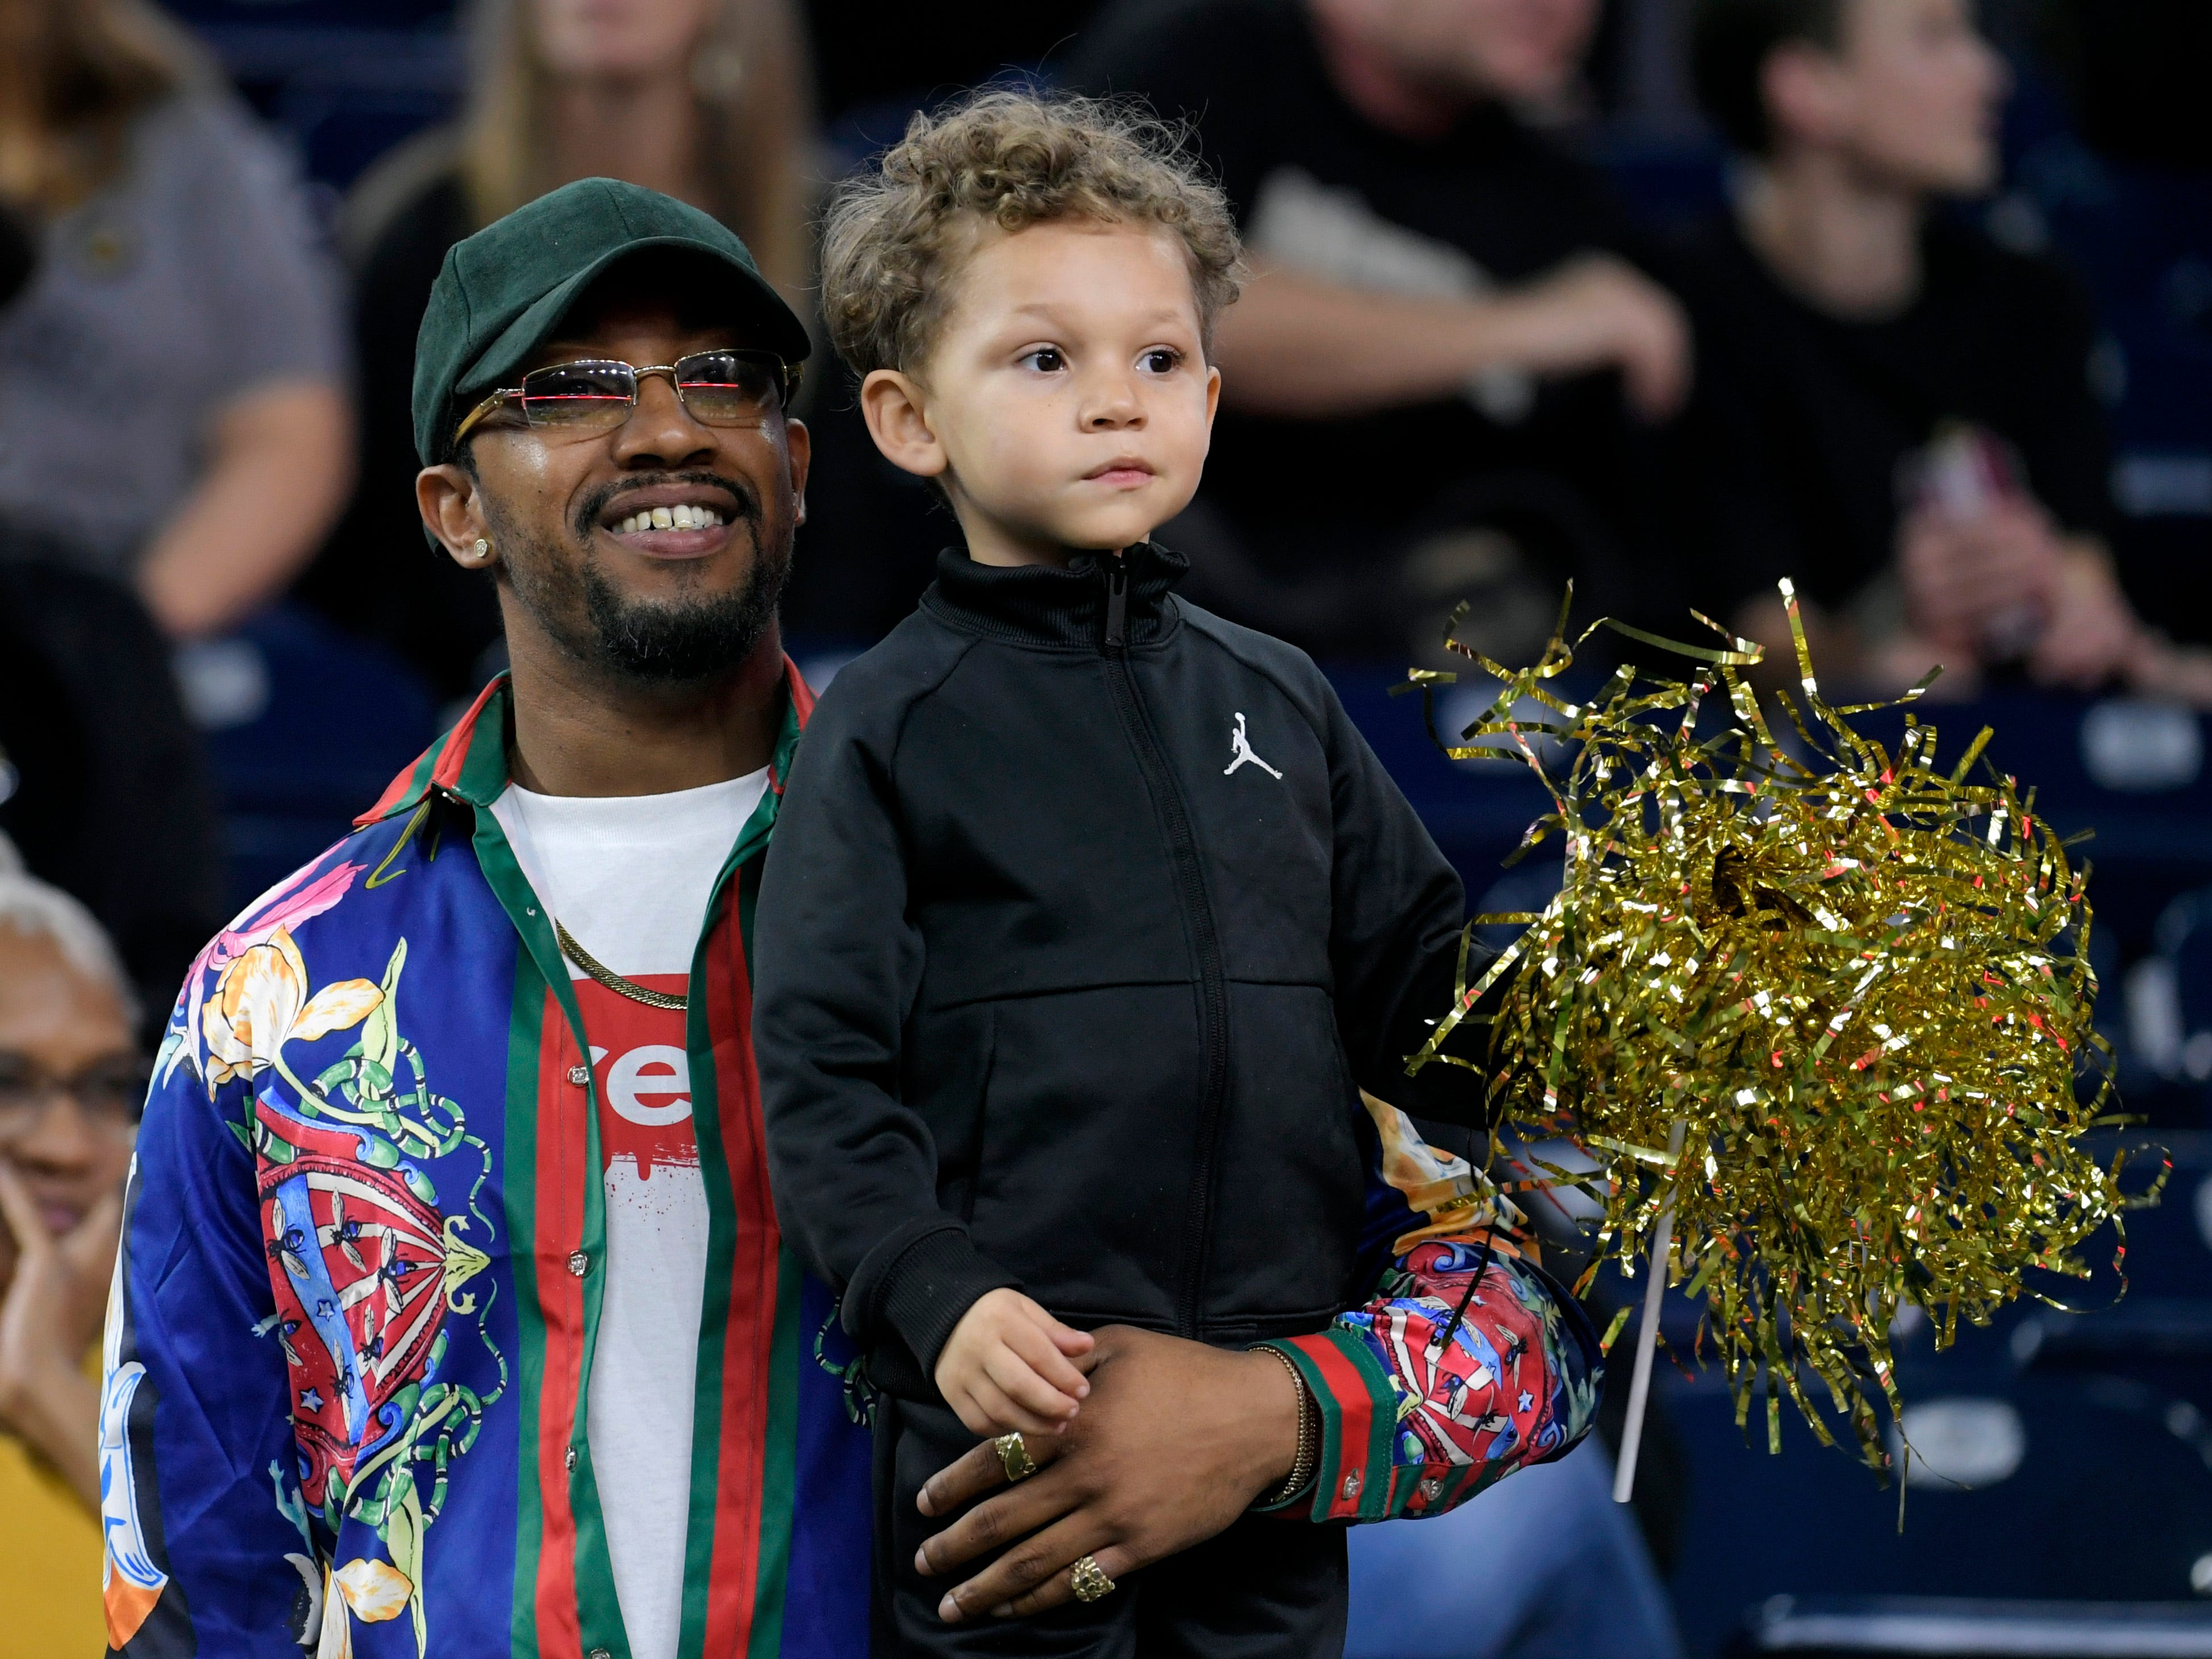 Larry Dotson holds his son, Layton, 4, as they watch Vanderbilt player Ladarius Wiley, Larry's brother, warm up before the Academy Sports + Outdoors Texas Bowl at NRG Stadium in Houston on Thursday, Dec. 27, 2018.